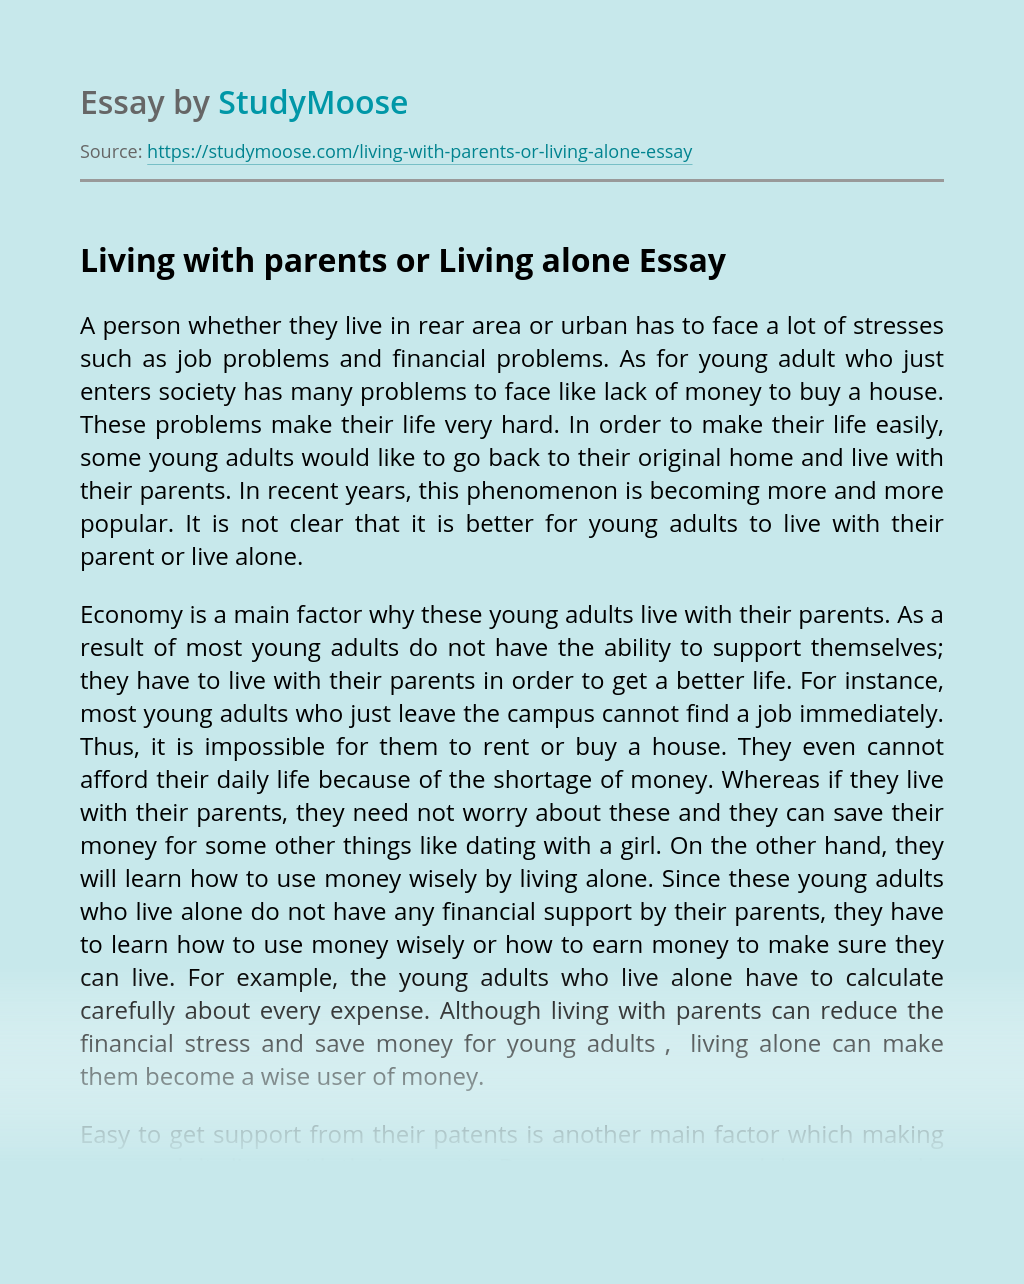 Living with parents or Living alone